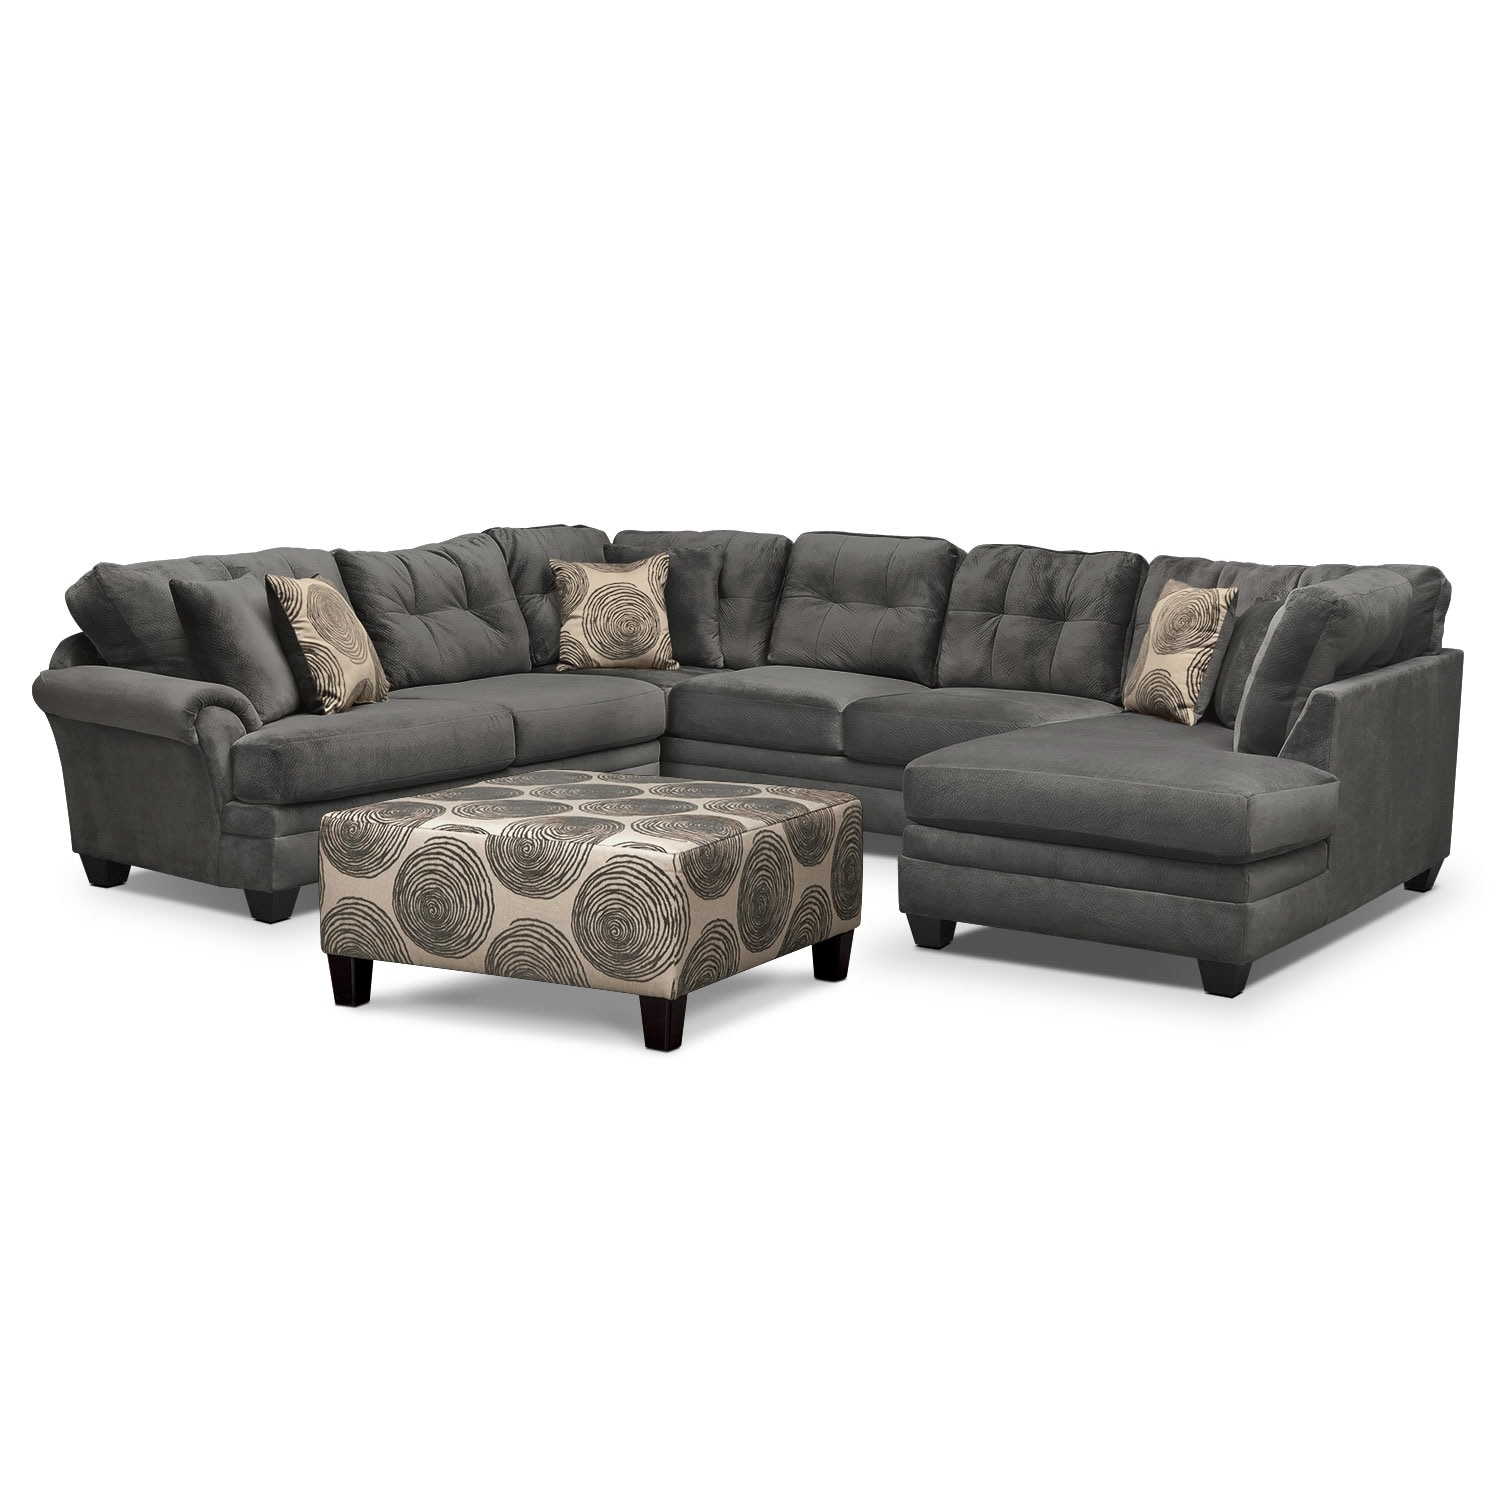 Value City Living Room Furniture Living Room Furniture Packages Value City Furniture